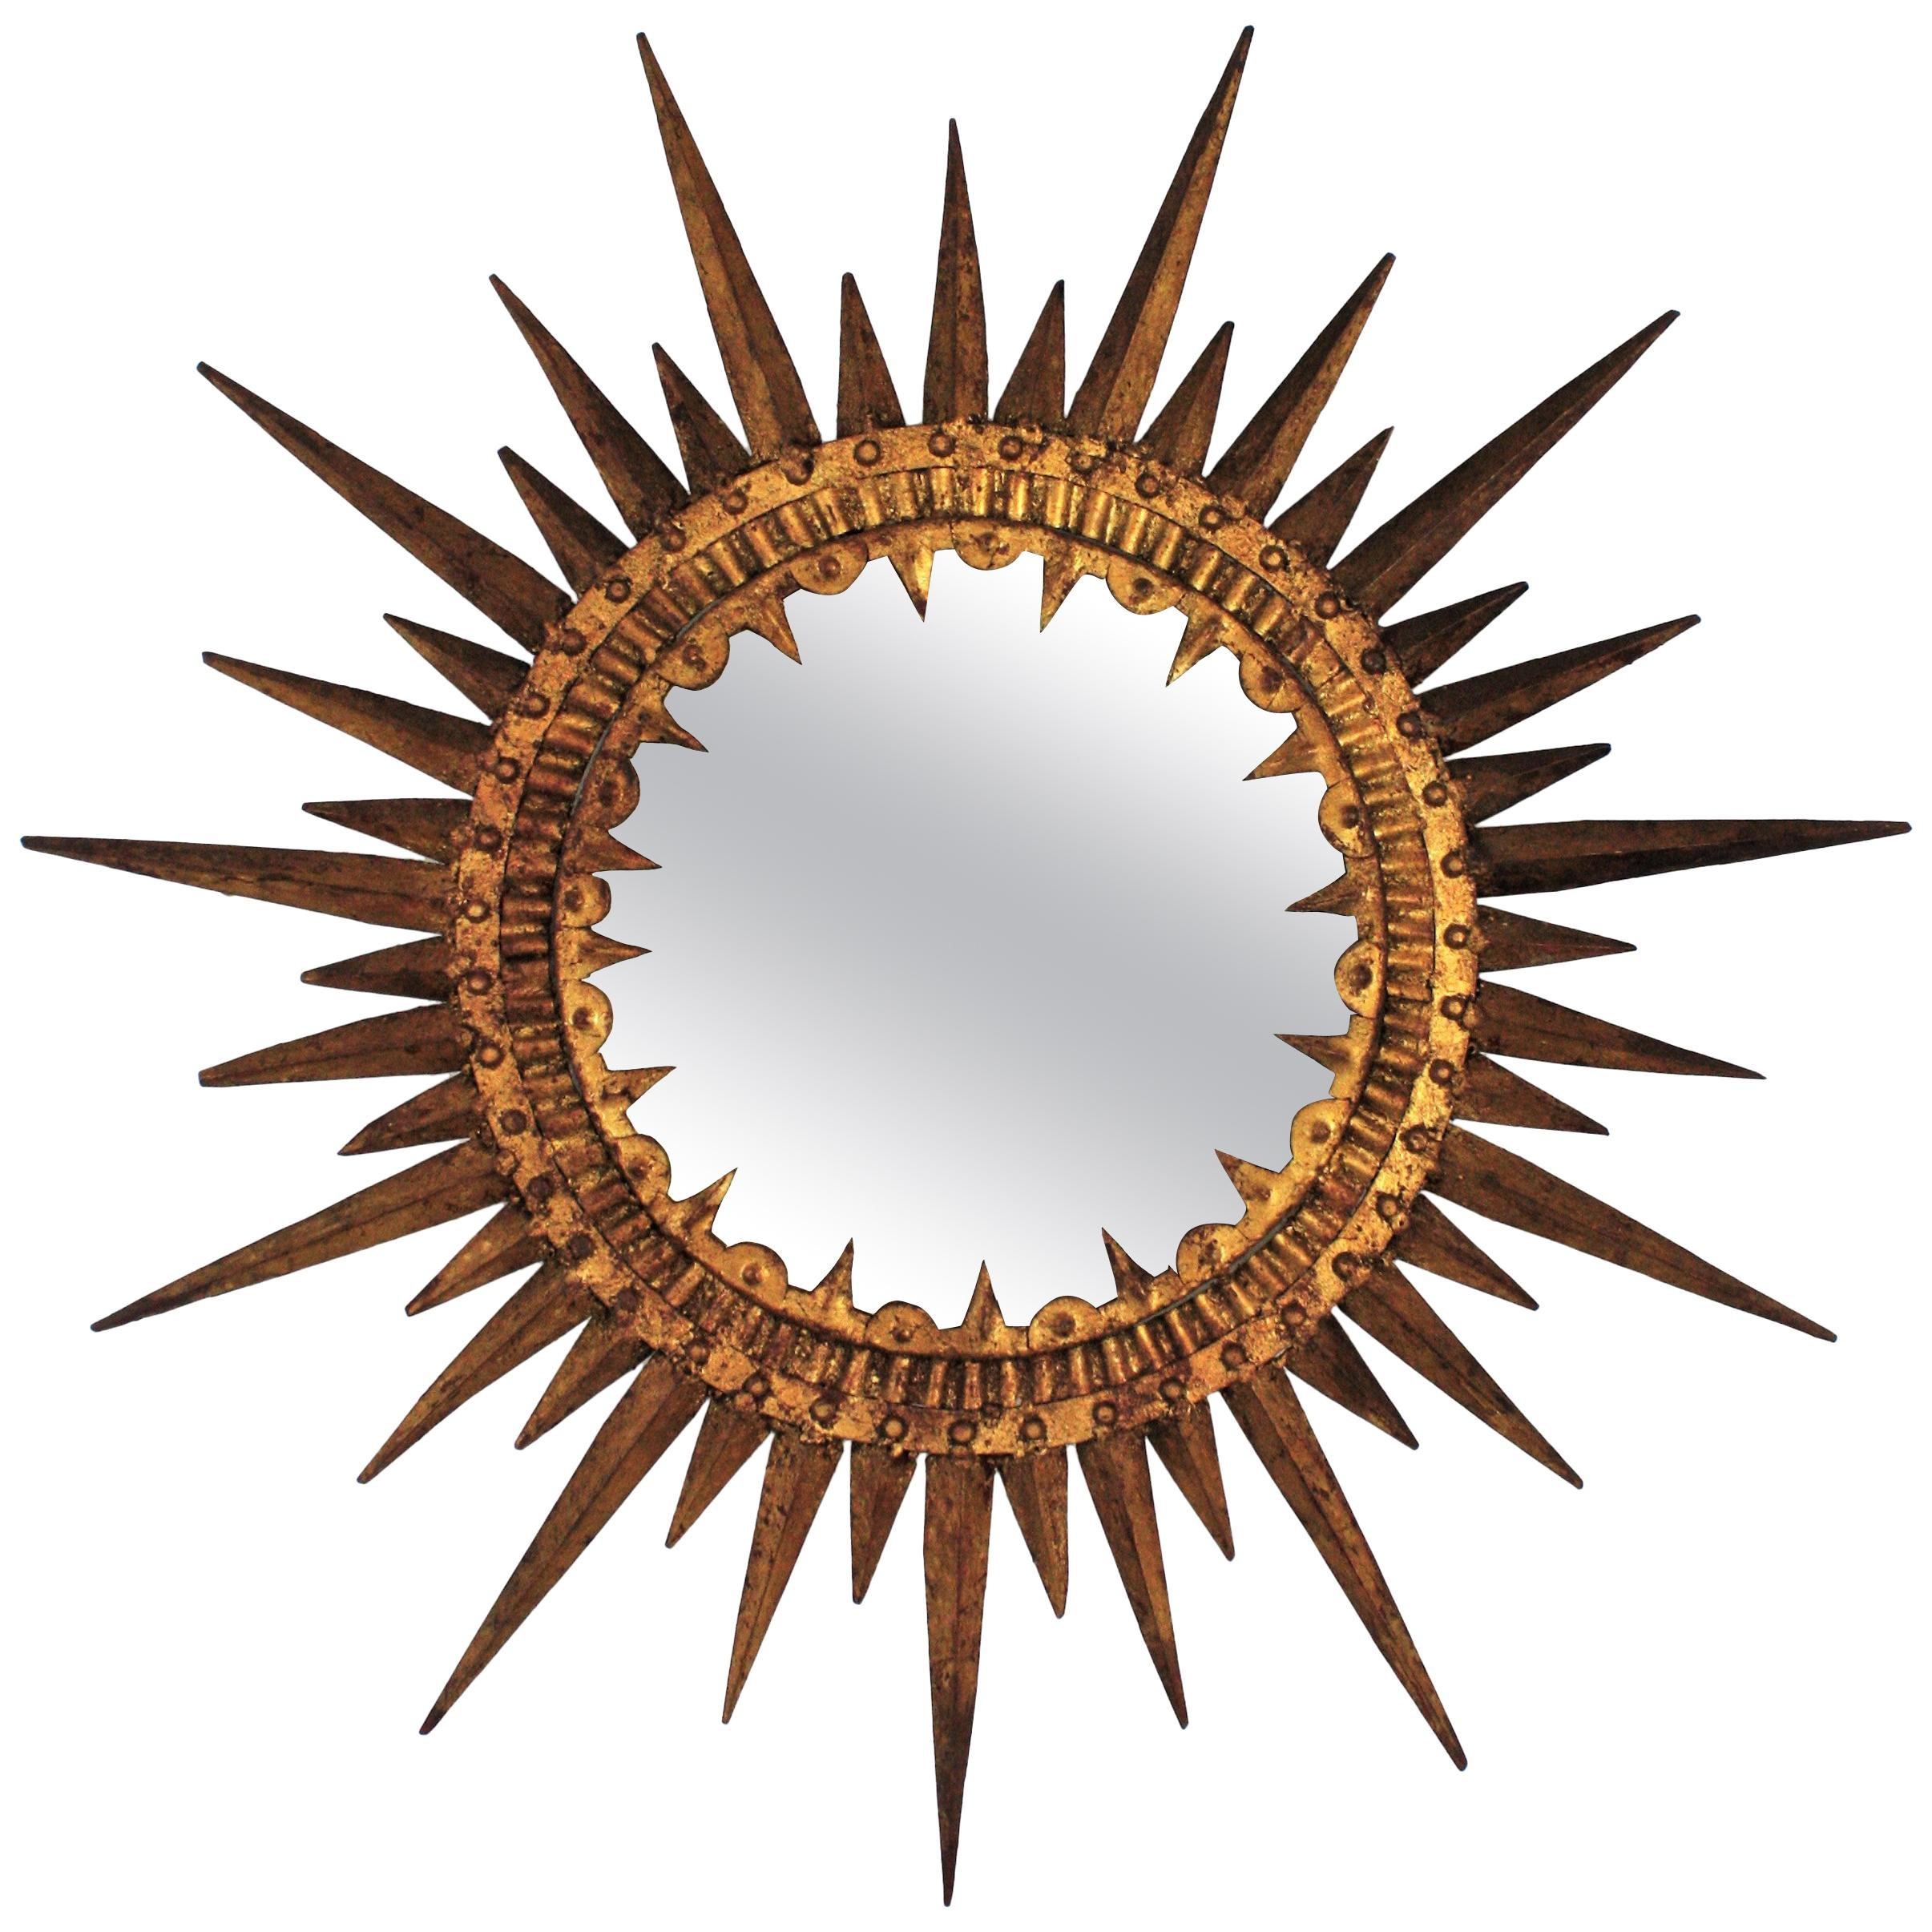 Sunburst Large Brutalist Mirror in Gilt Wrought Iron, Spain, 1950s